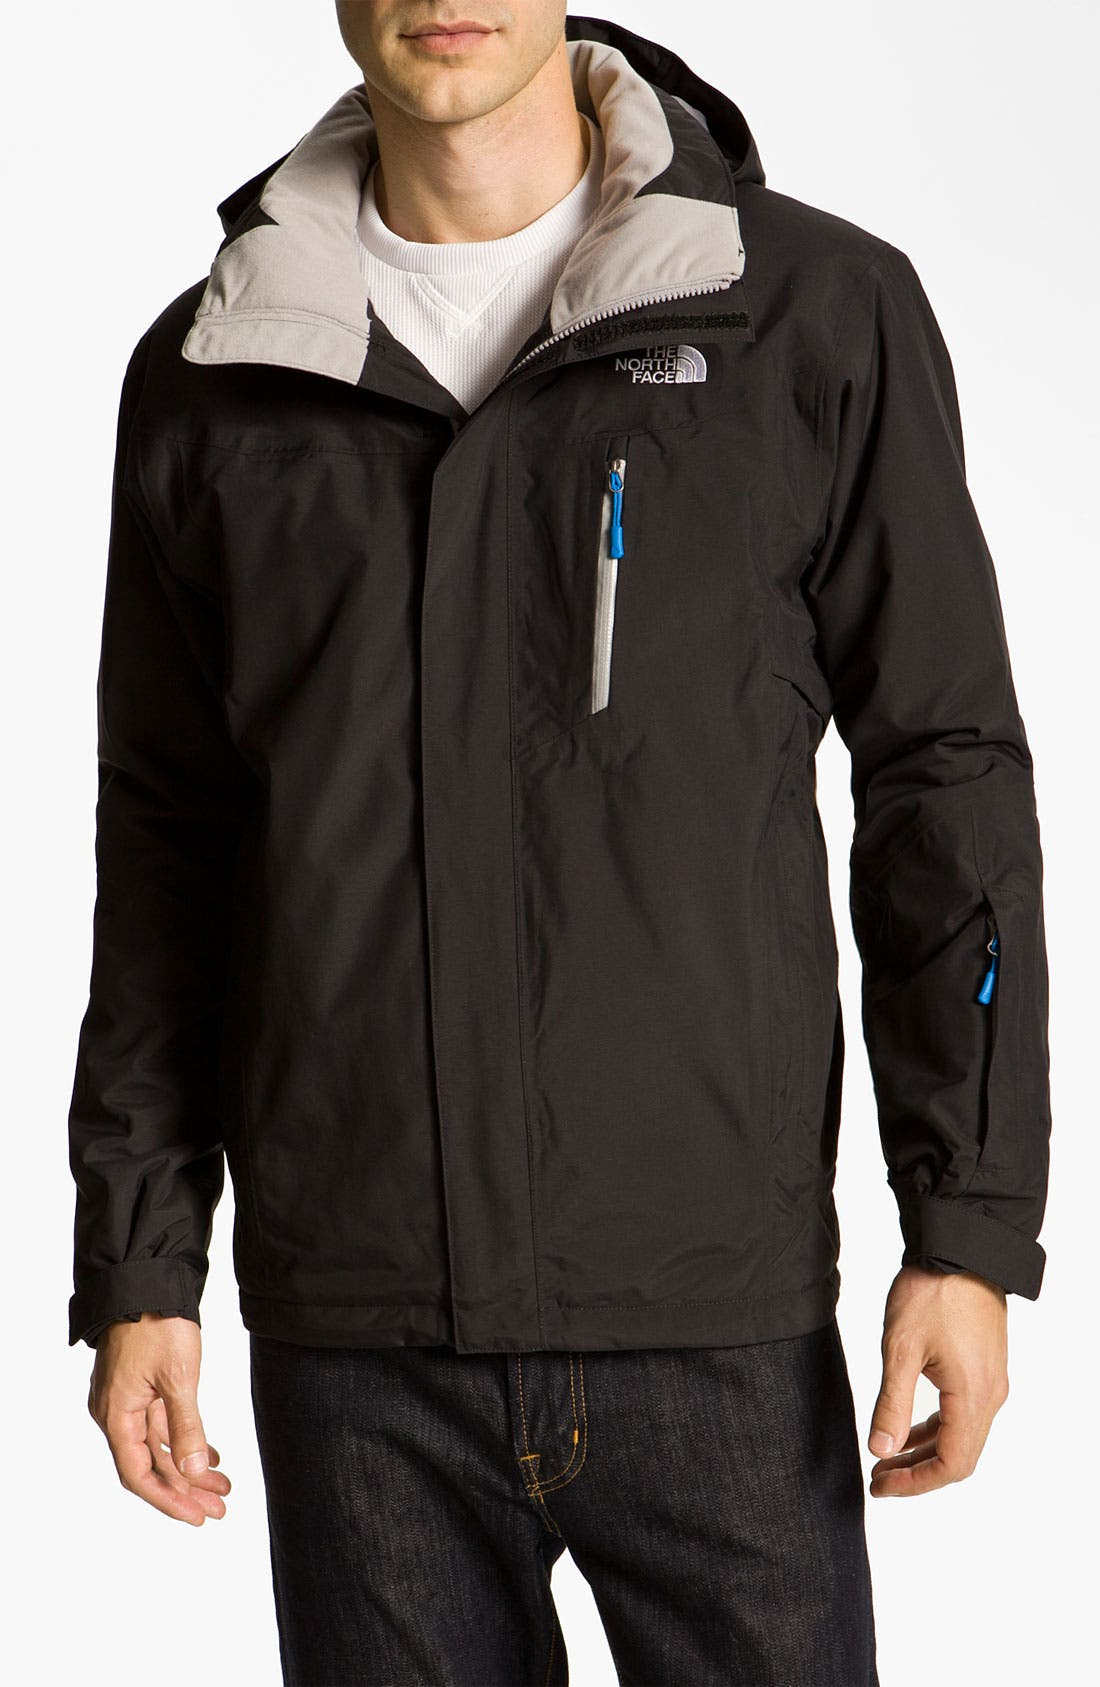 Main Image - The North Face 'Peskara' Jacket